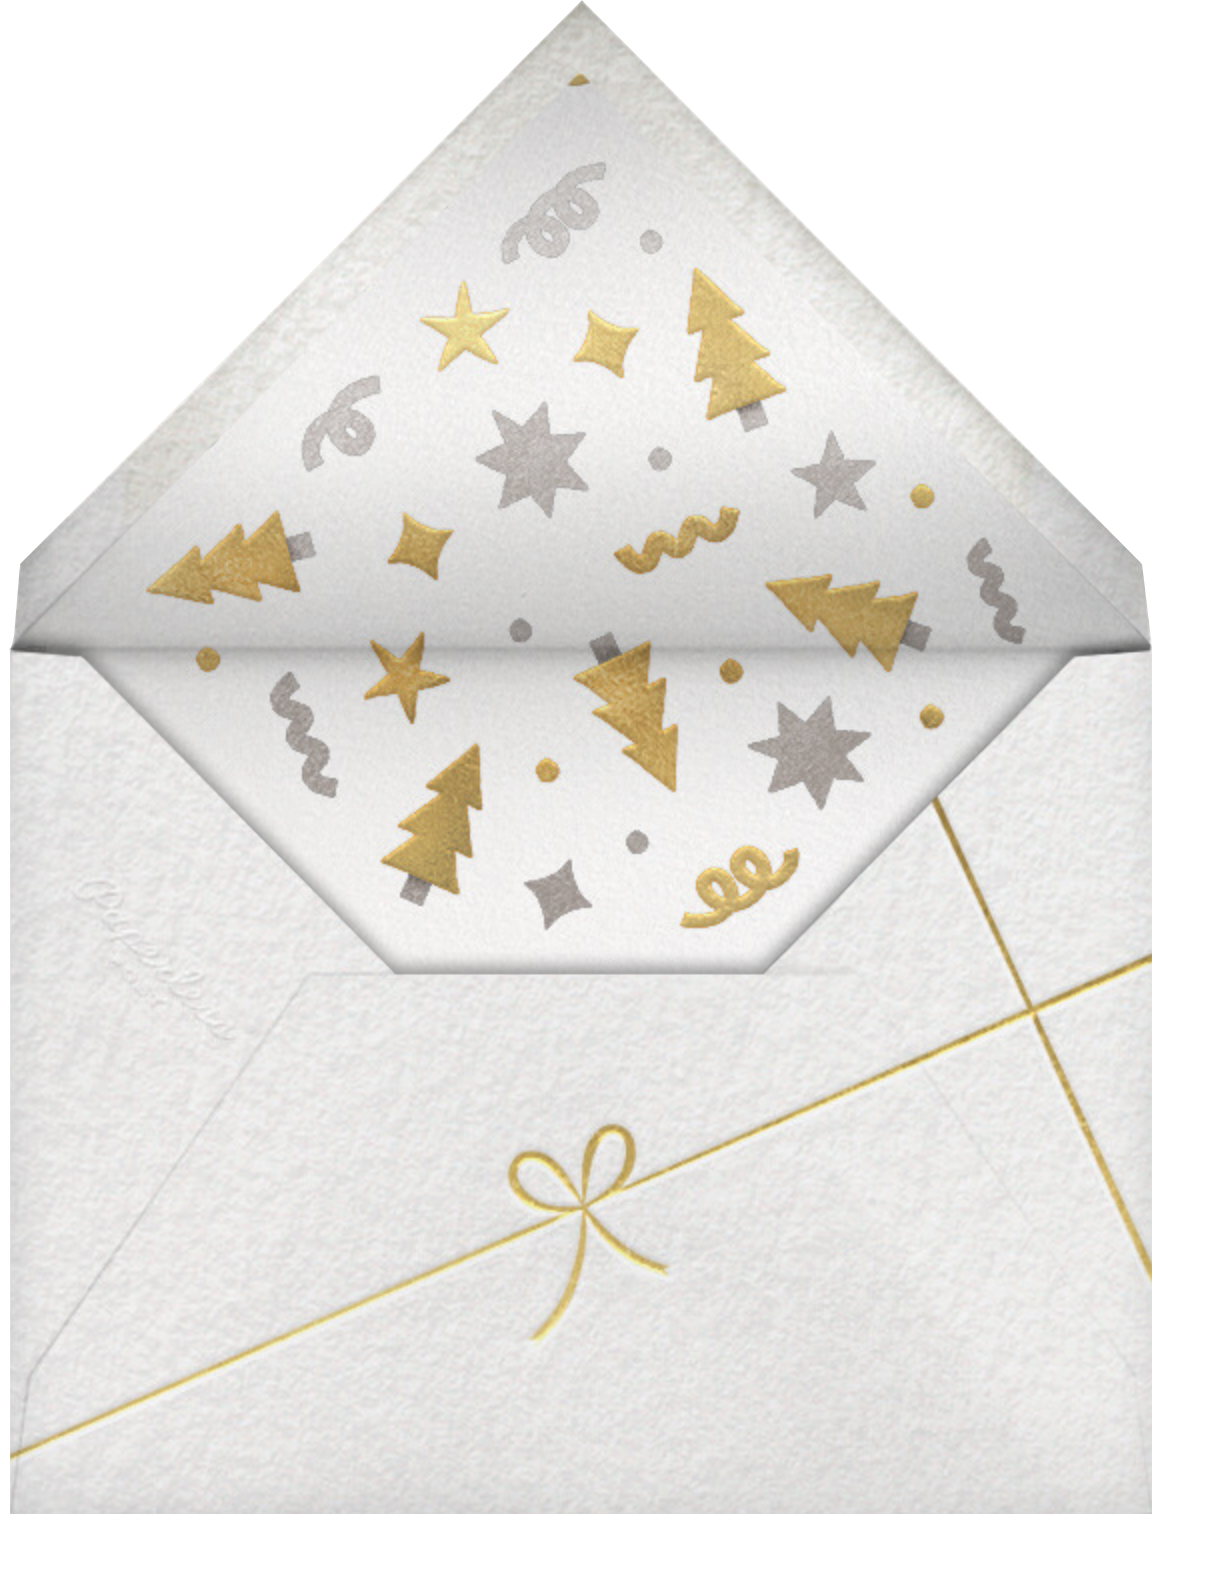 Joy and Candy Canes (Multi-Photo) - Paperless Post - Envelope